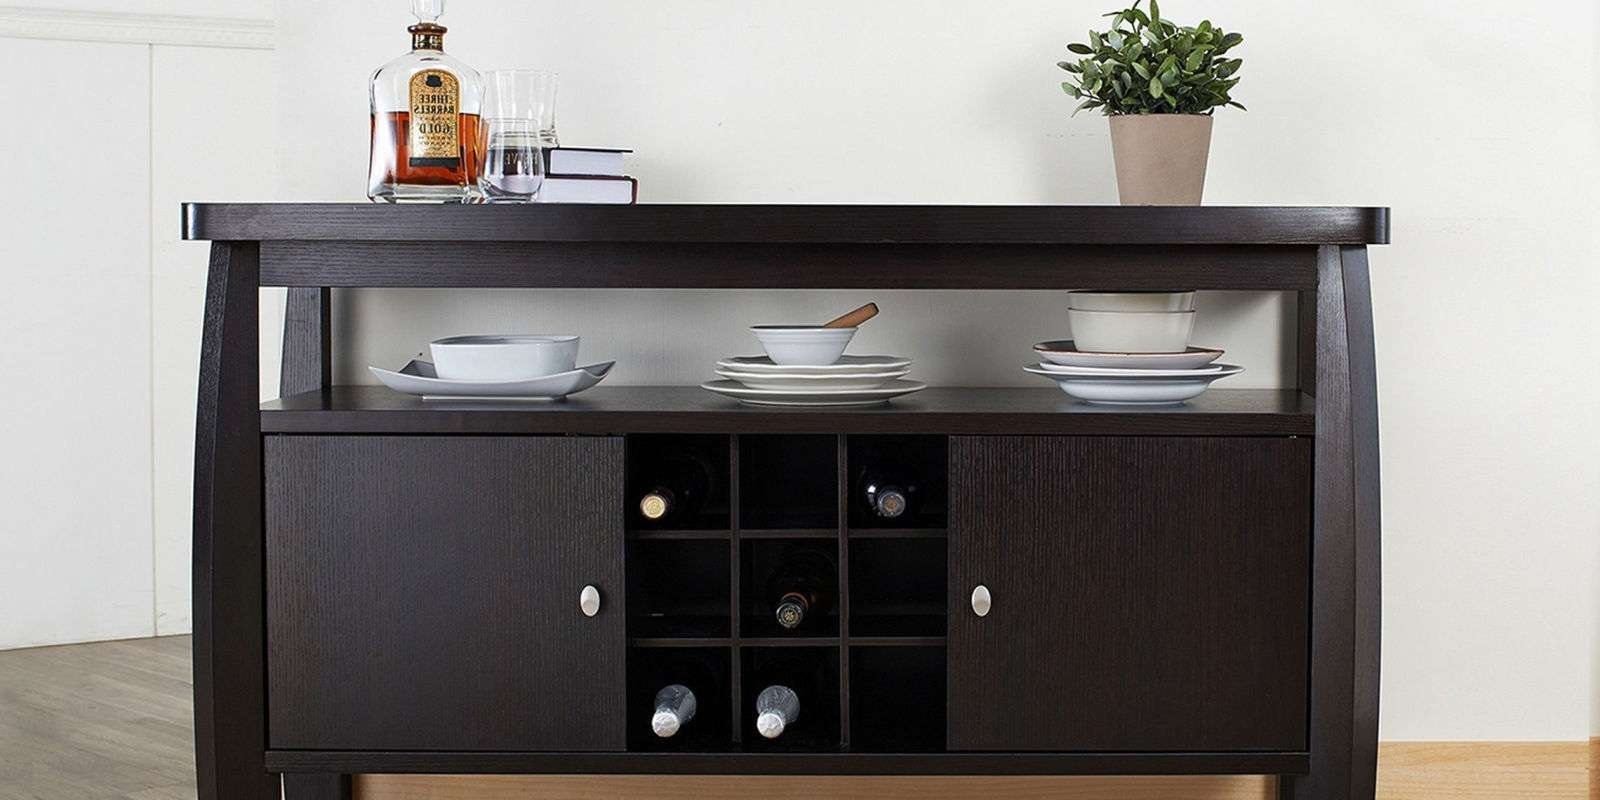 11 Best Sideboards And Buffets In 2018 – Reviews Of Sideboards Intended For Sideboards Decors (View 1 of 20)